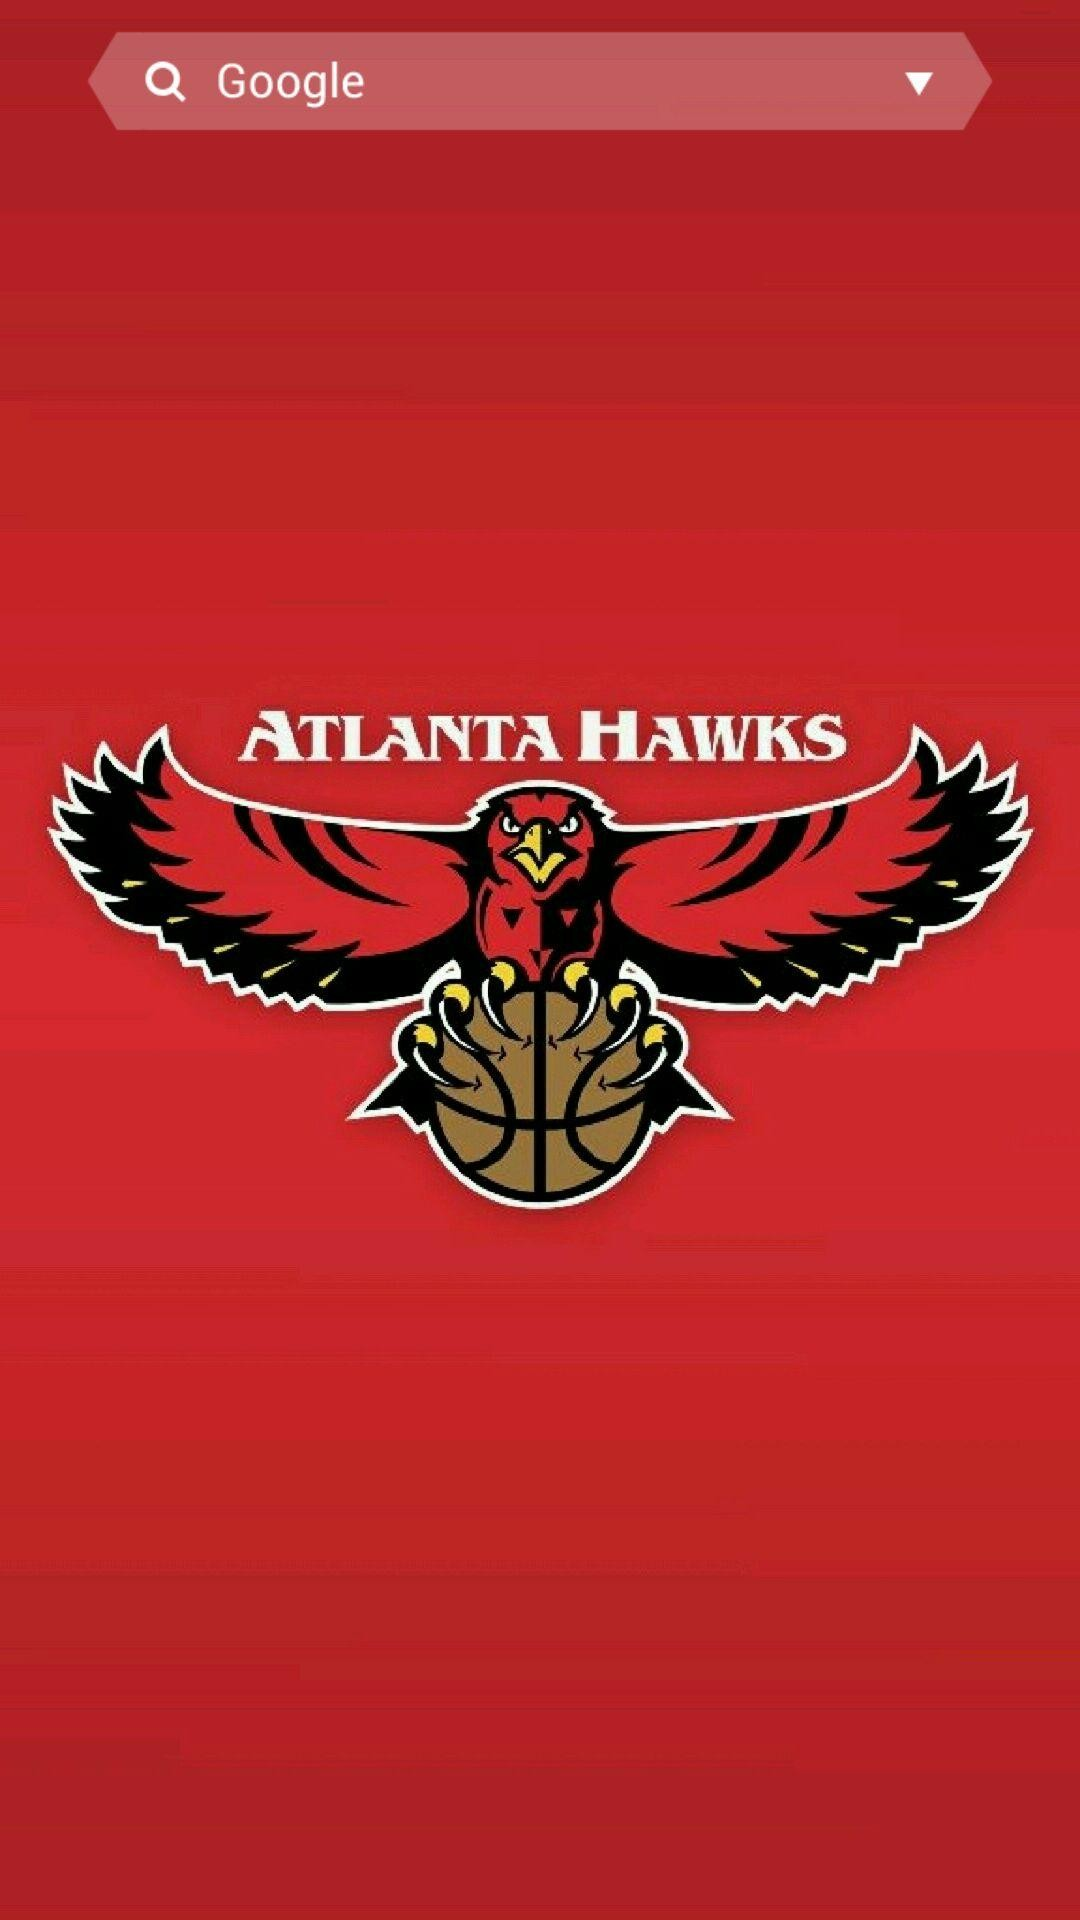 Atlanta hawks wallpapers wallpapertag - Hawk iphone wallpaper ...